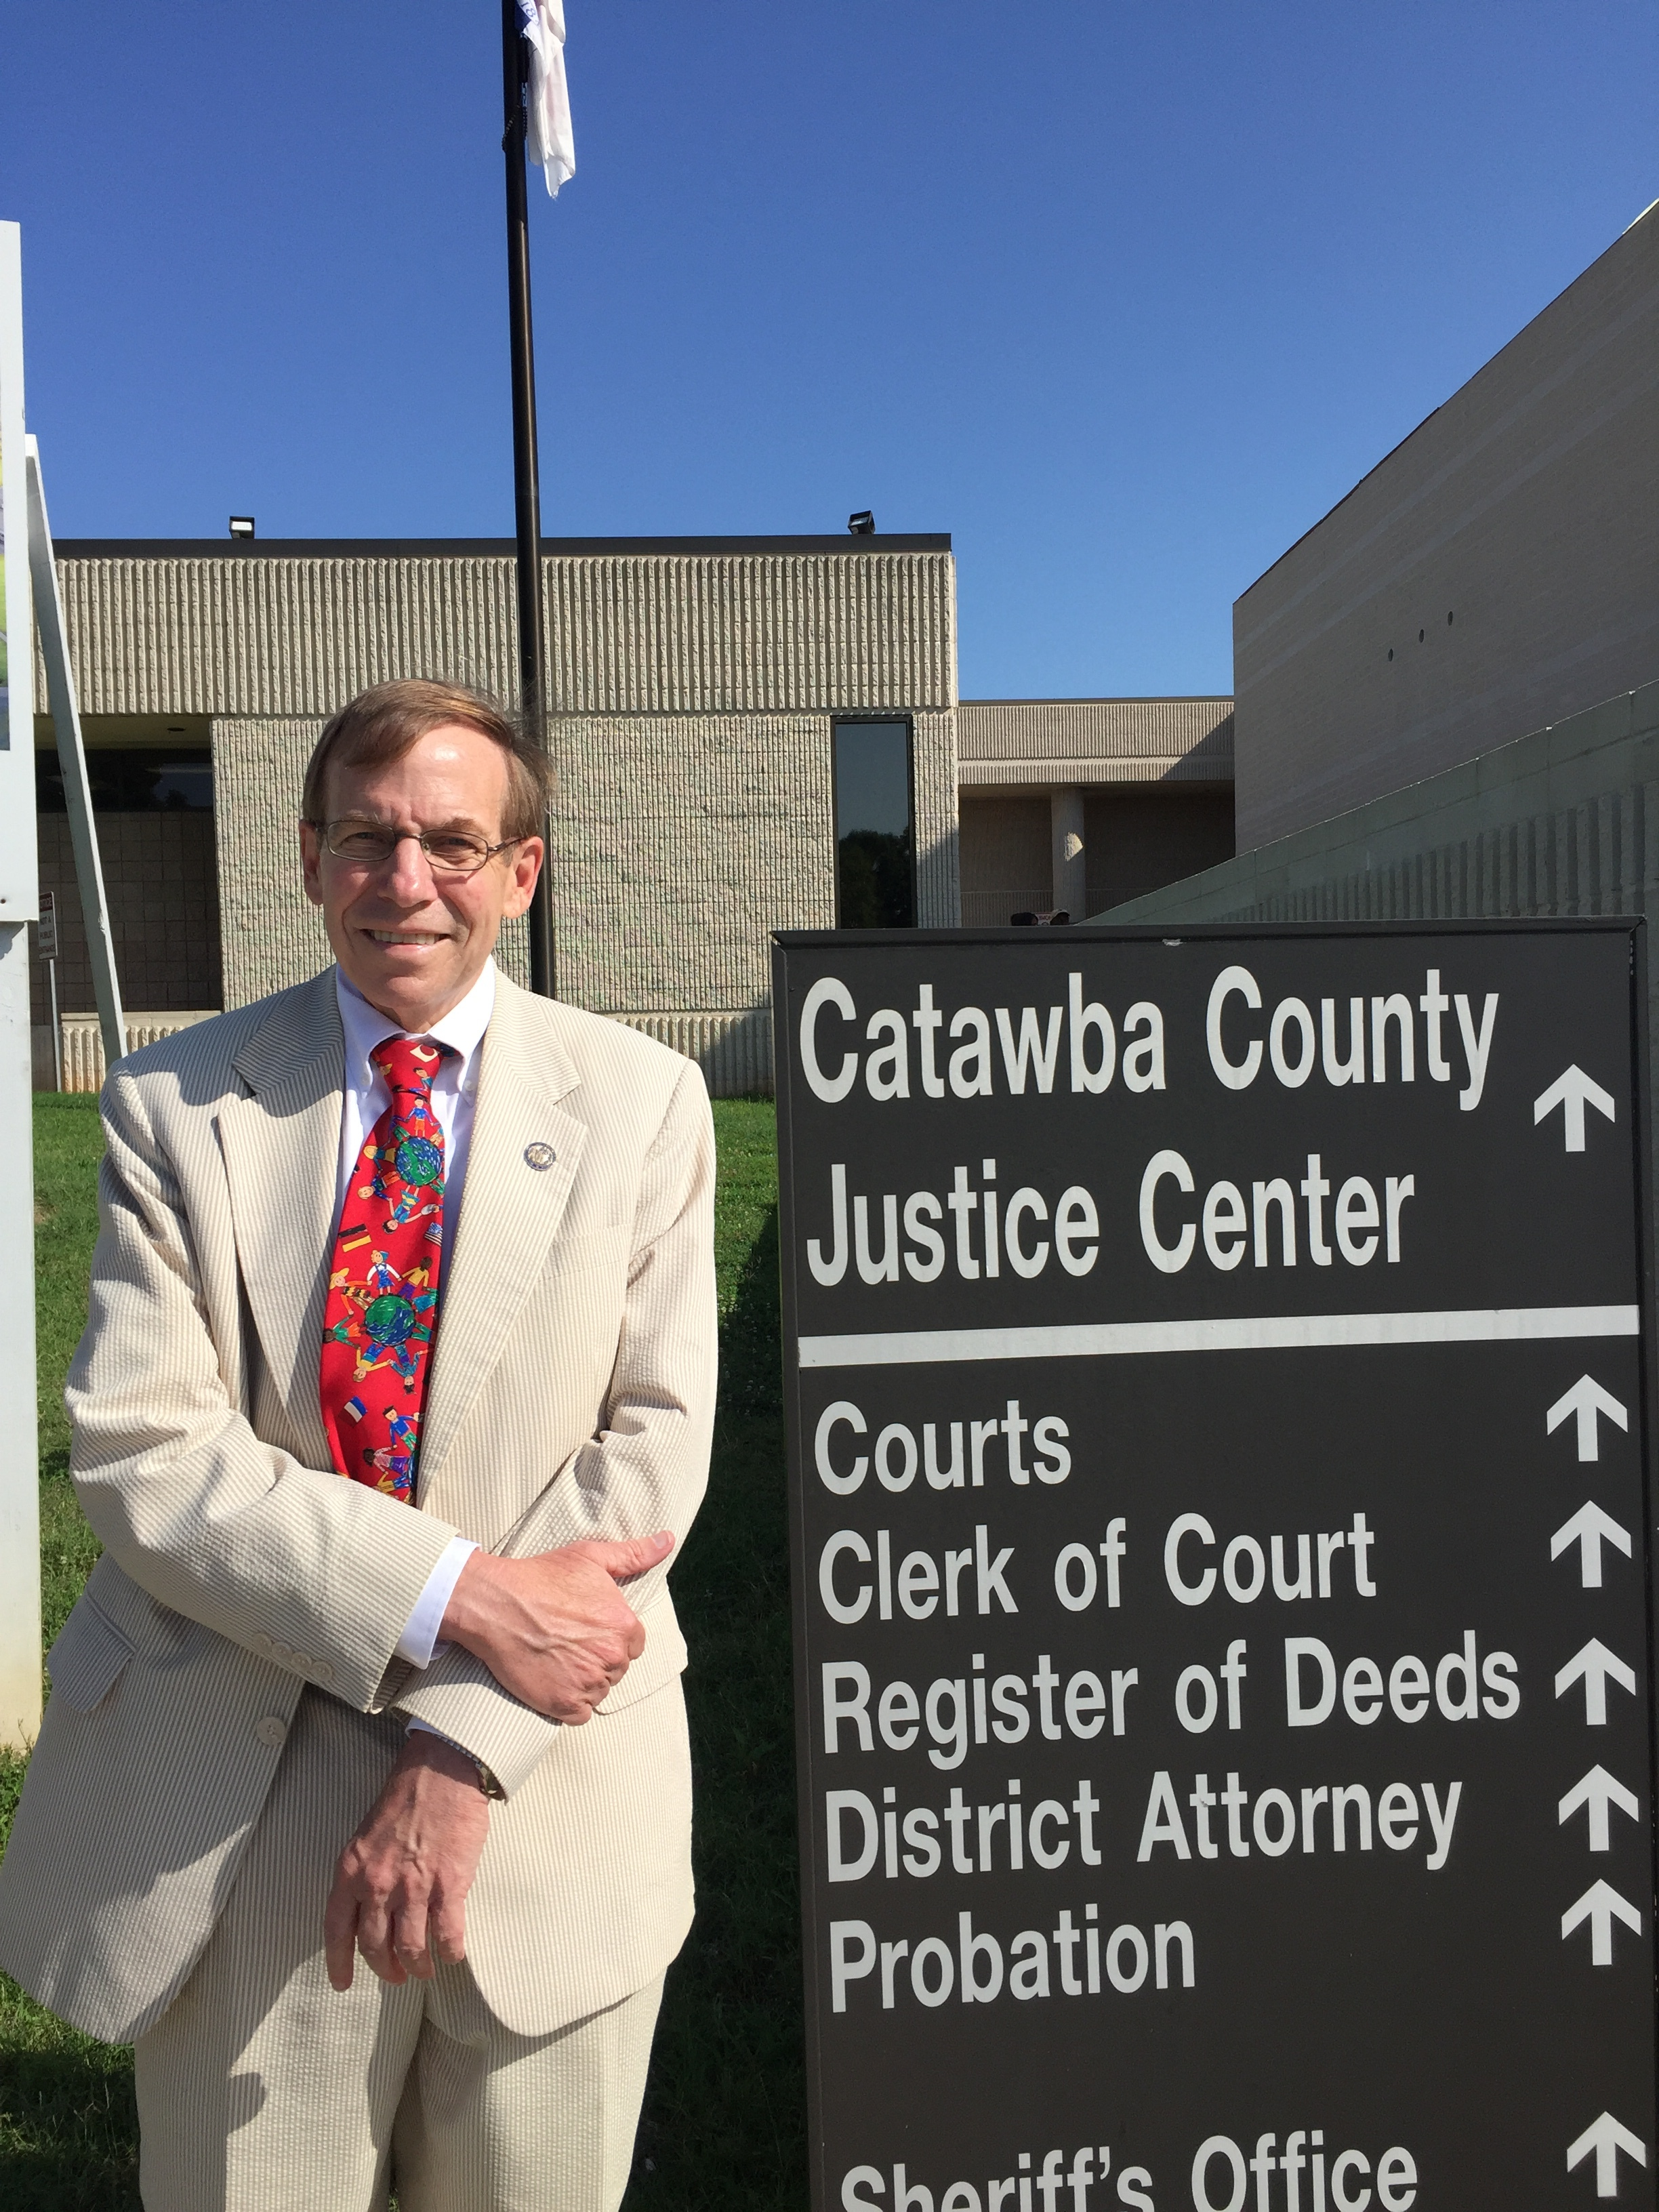 Visiting Catawba County, July 14, 2016.